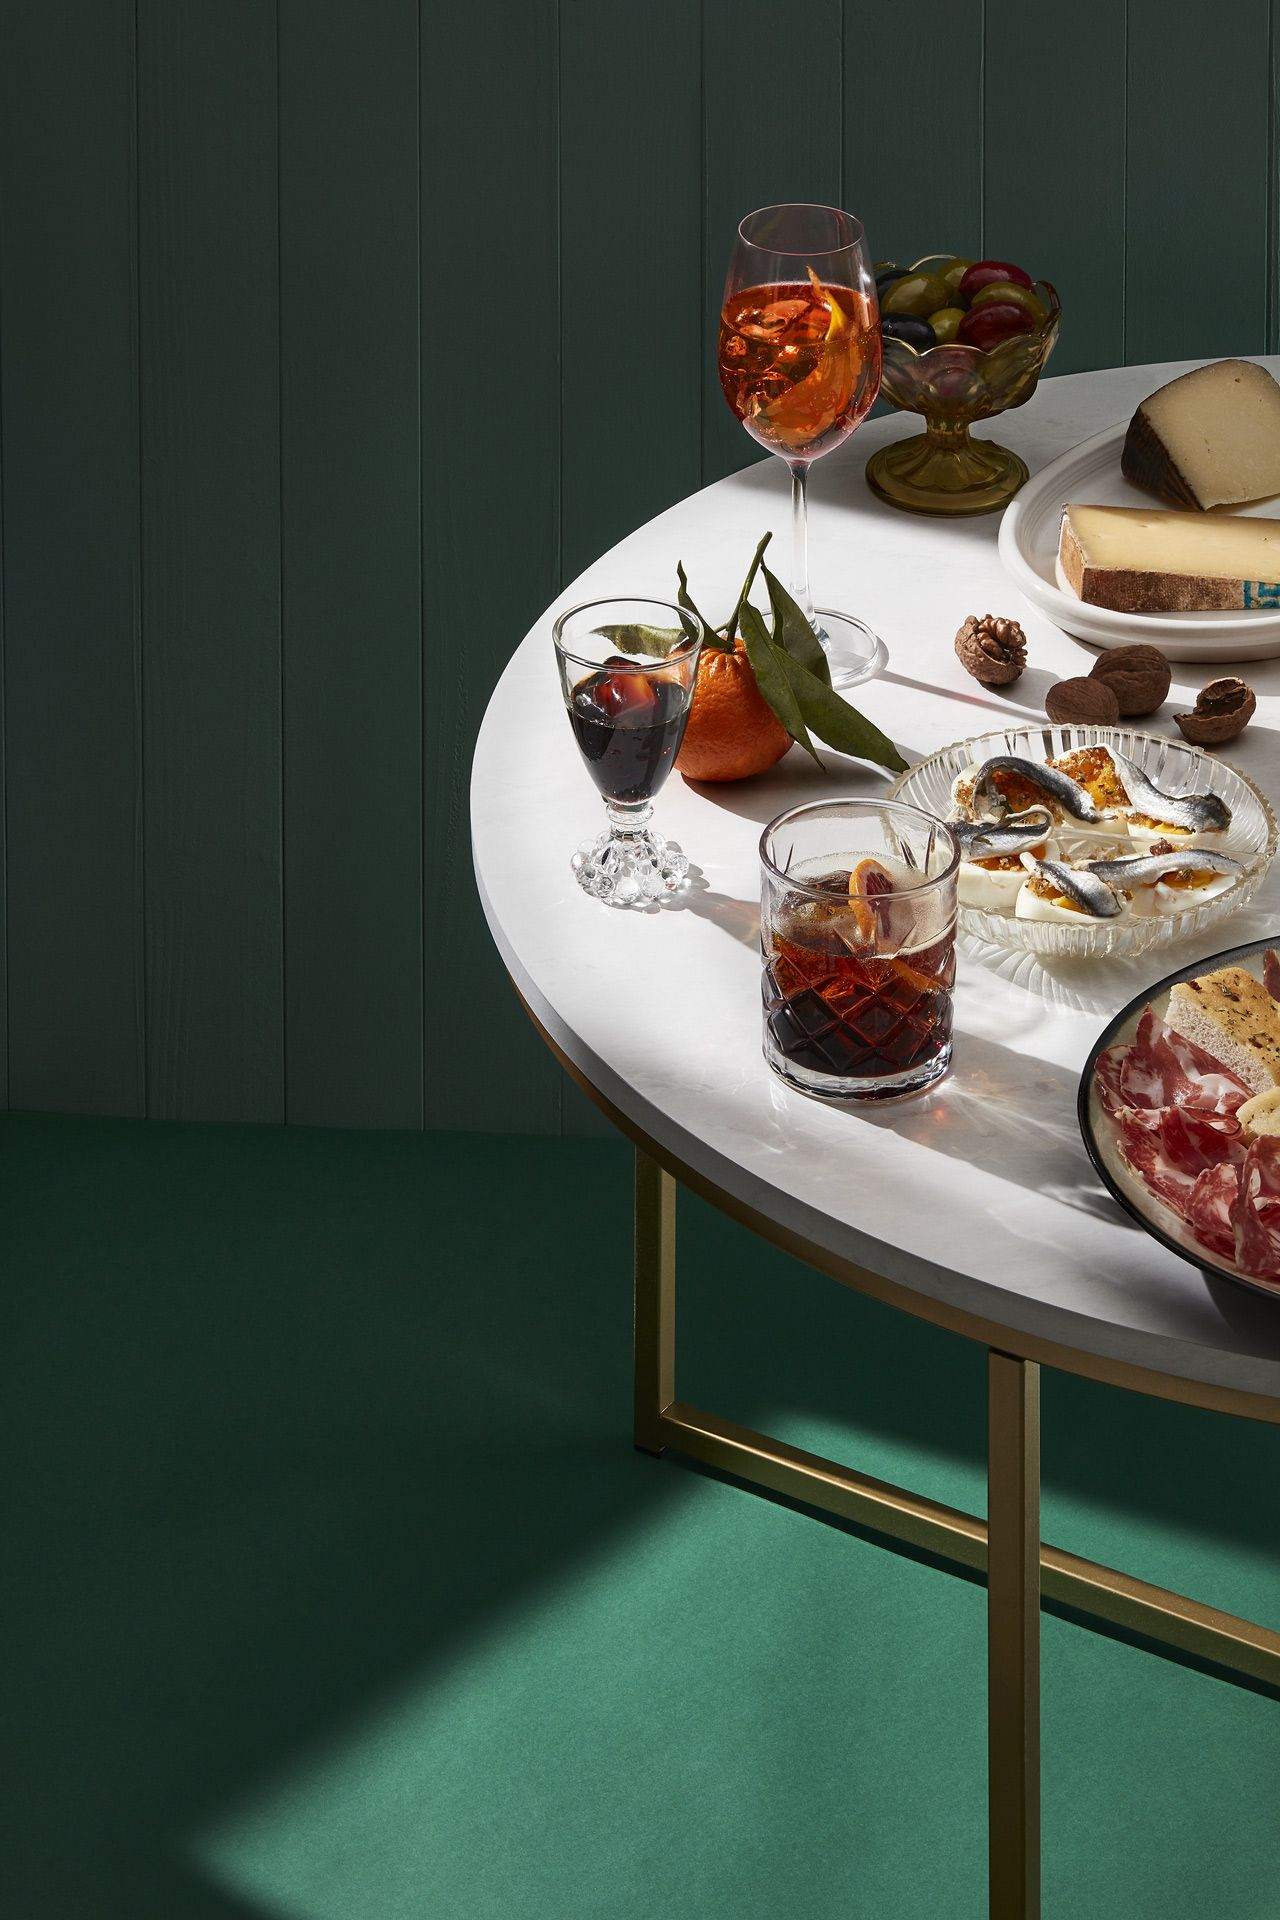 round marble table with glasses and drinks cold meats canapes cheeses on top on dark green background by Mathieu Levesque for enRoute Magazine Air Canada